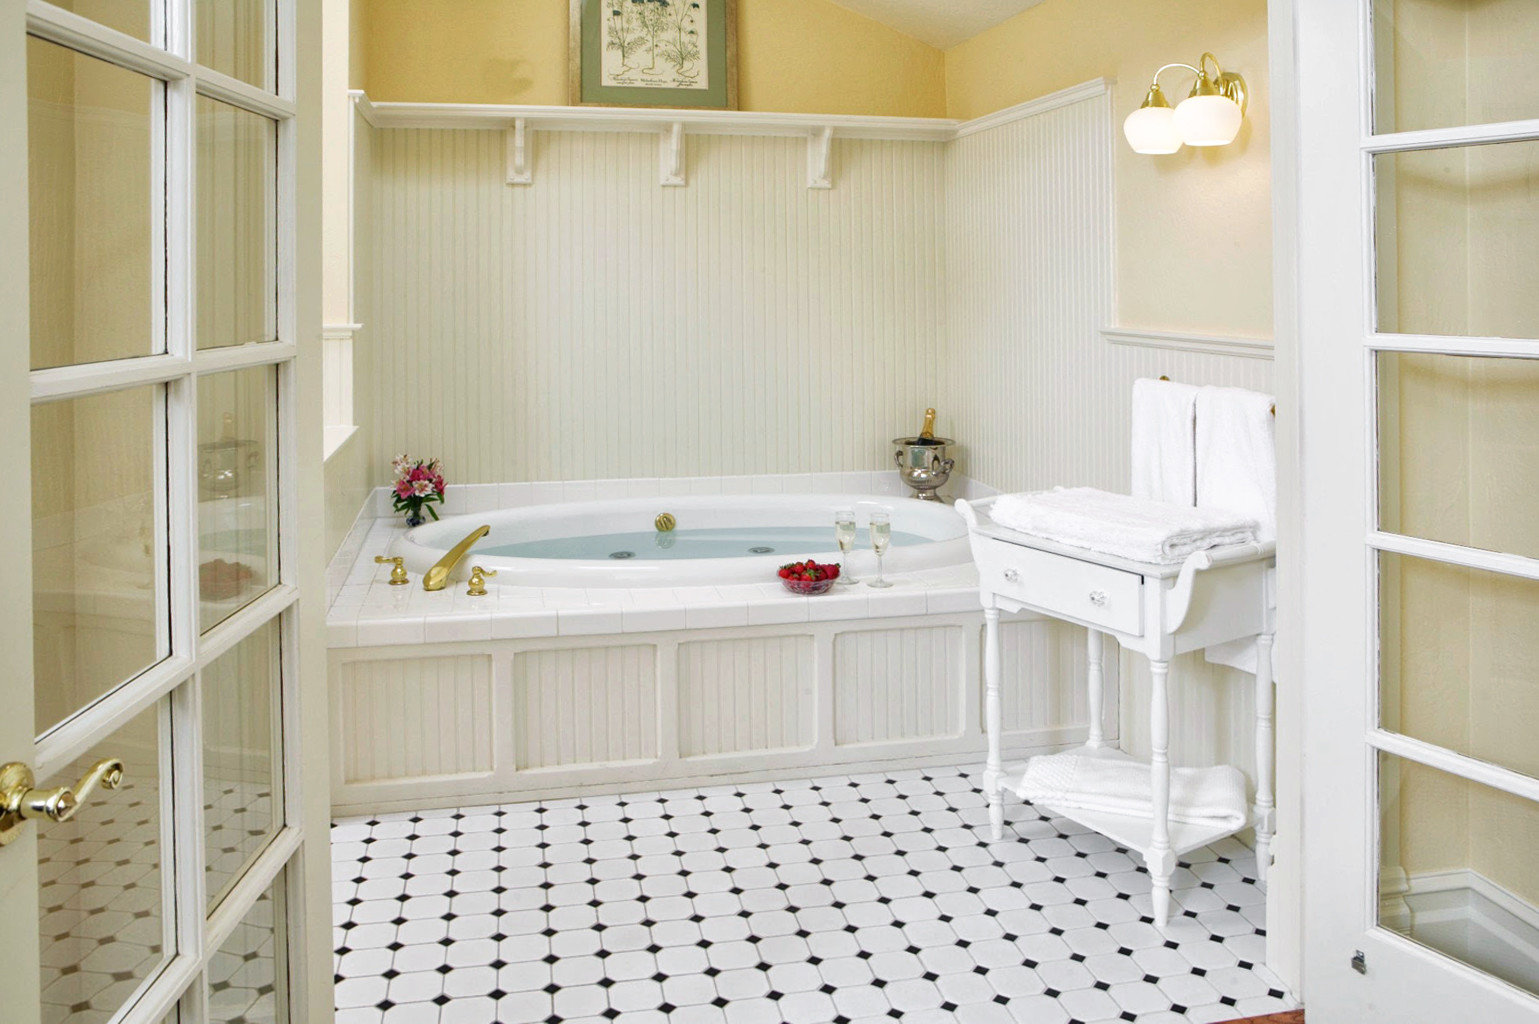 Bath Boutique Inn product home cottage cabinetry bathroom